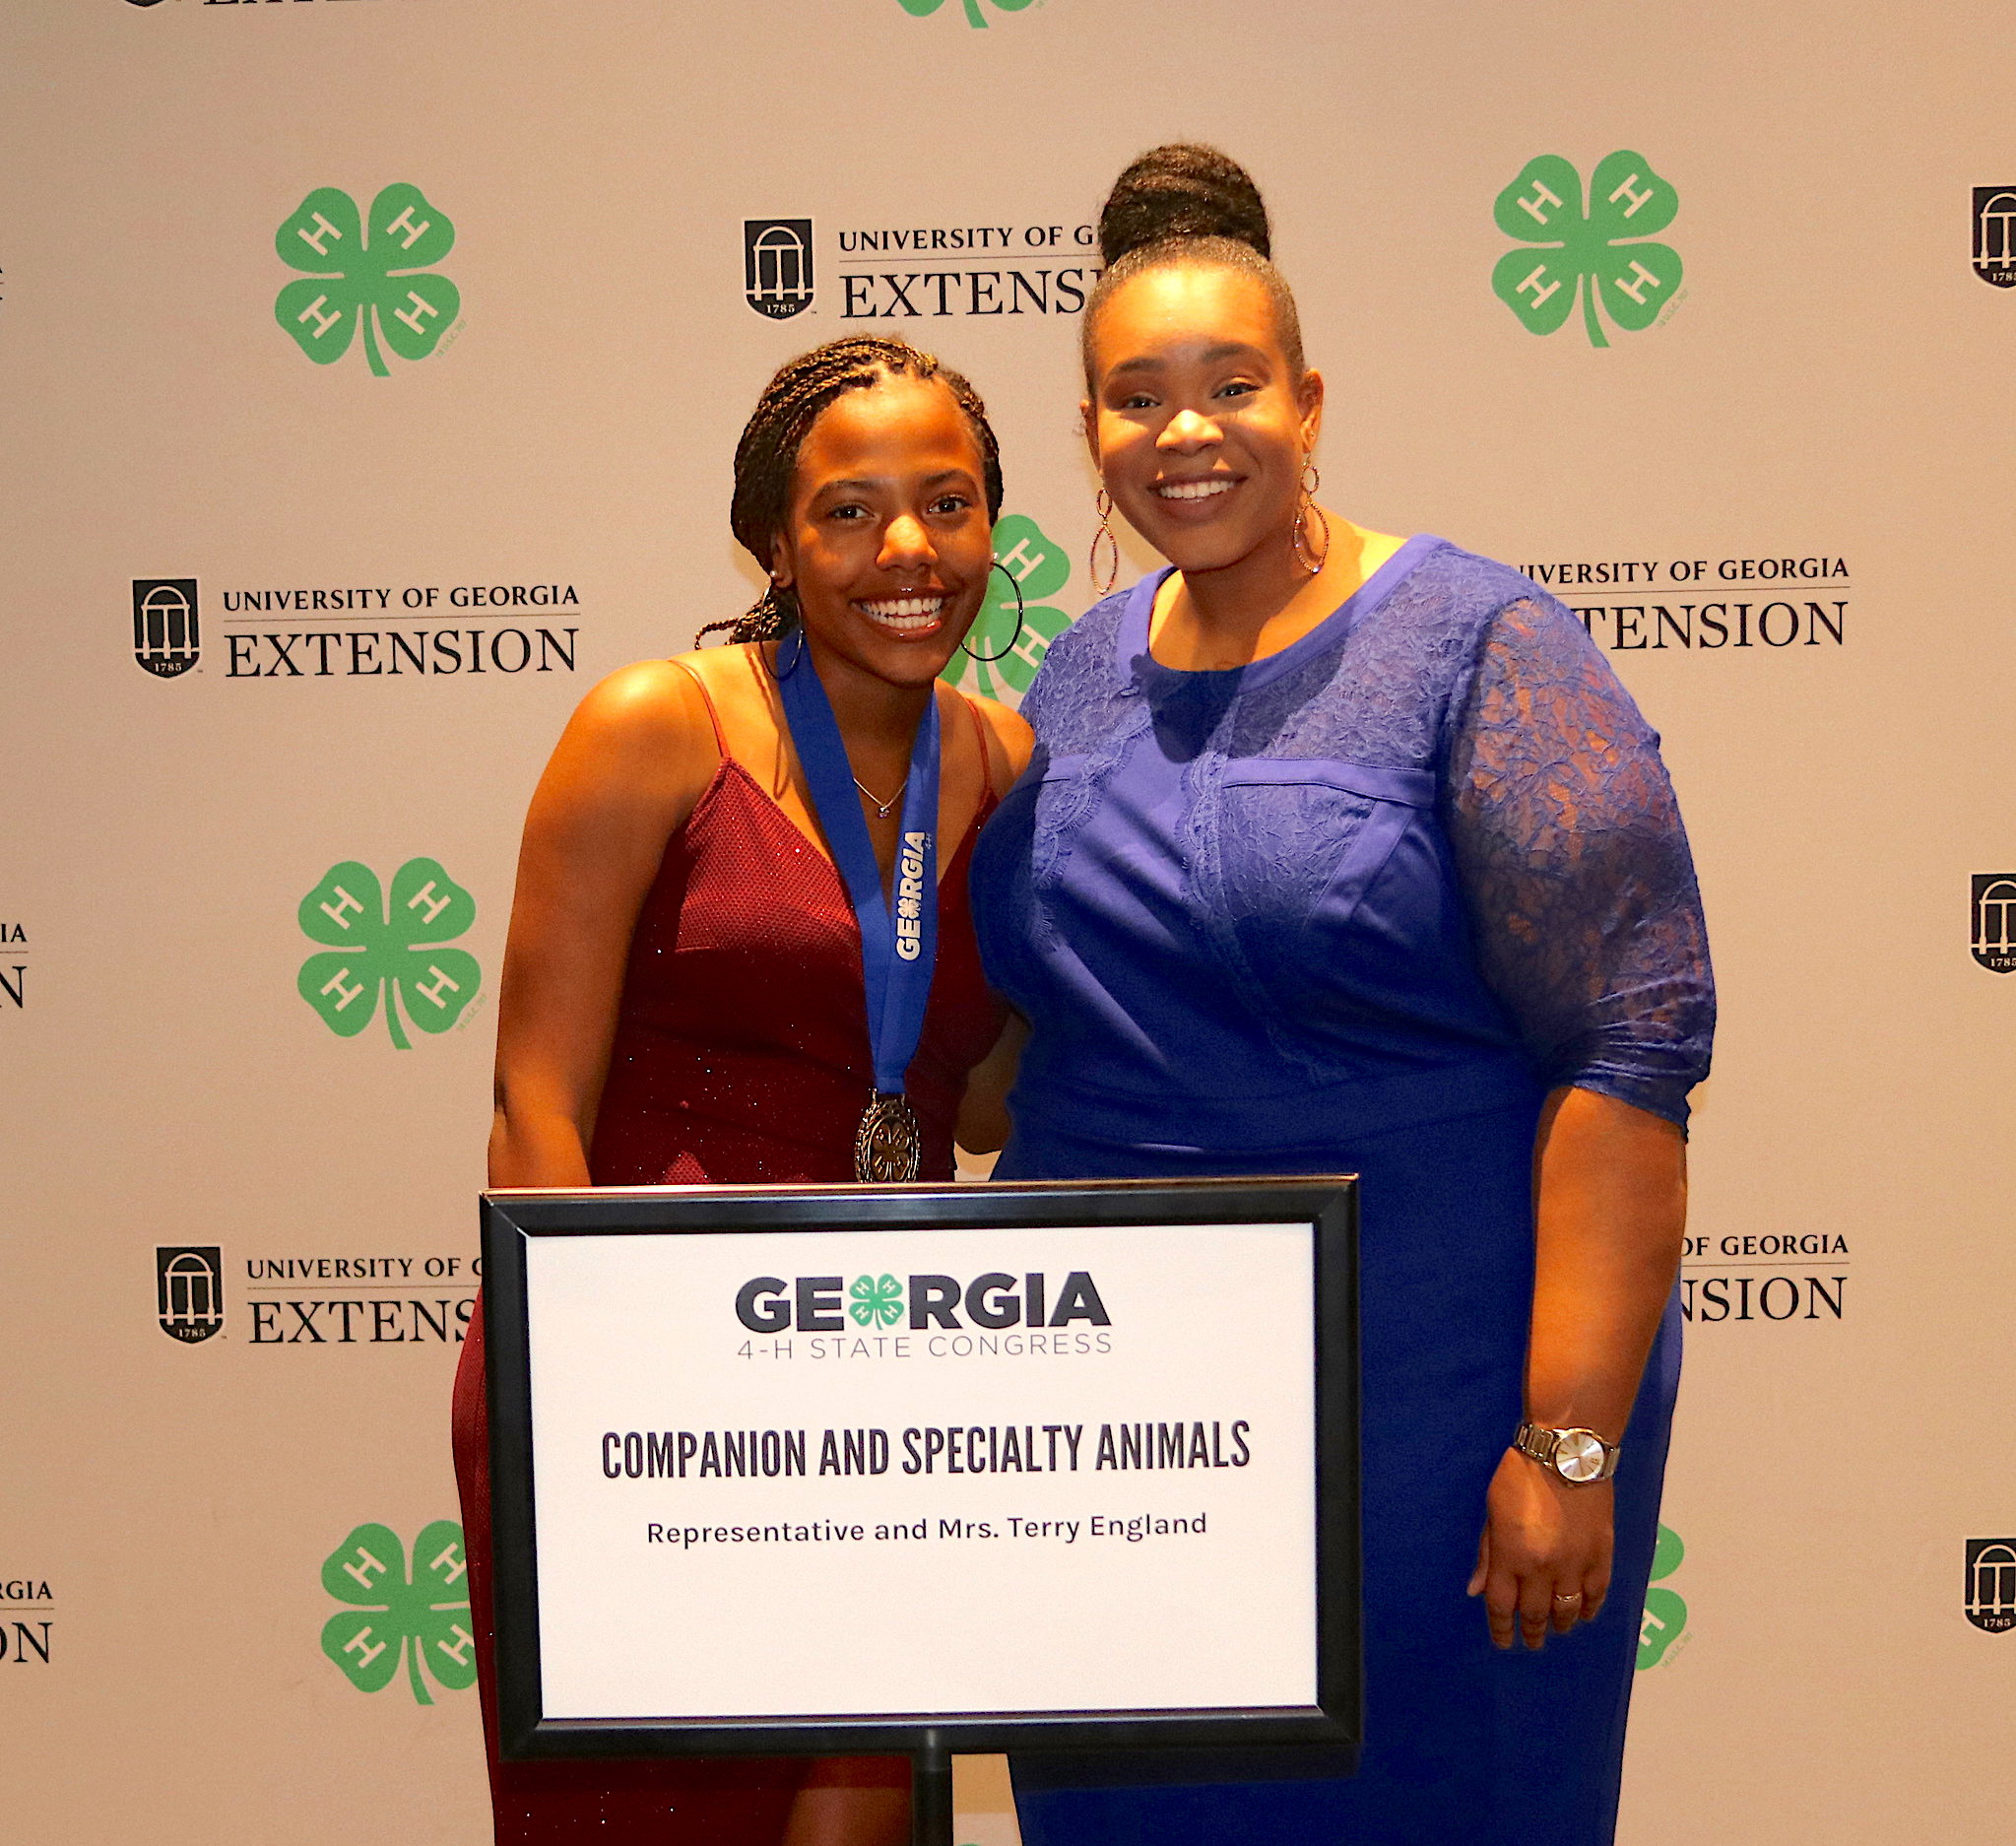 Georgia 4-H member Tandria Burke of Dougherty County was among the 4-H'ers who earned the title of Master 4-H'er during Georgia 4-H State Congress held July 23-26 in Atlanta. Burke competed in the Companion and Specialty Animals category. She is shown (left) with University of Georgia Cooperative Extension 4-H Agent for Dougherty County Jazmin Thomas.